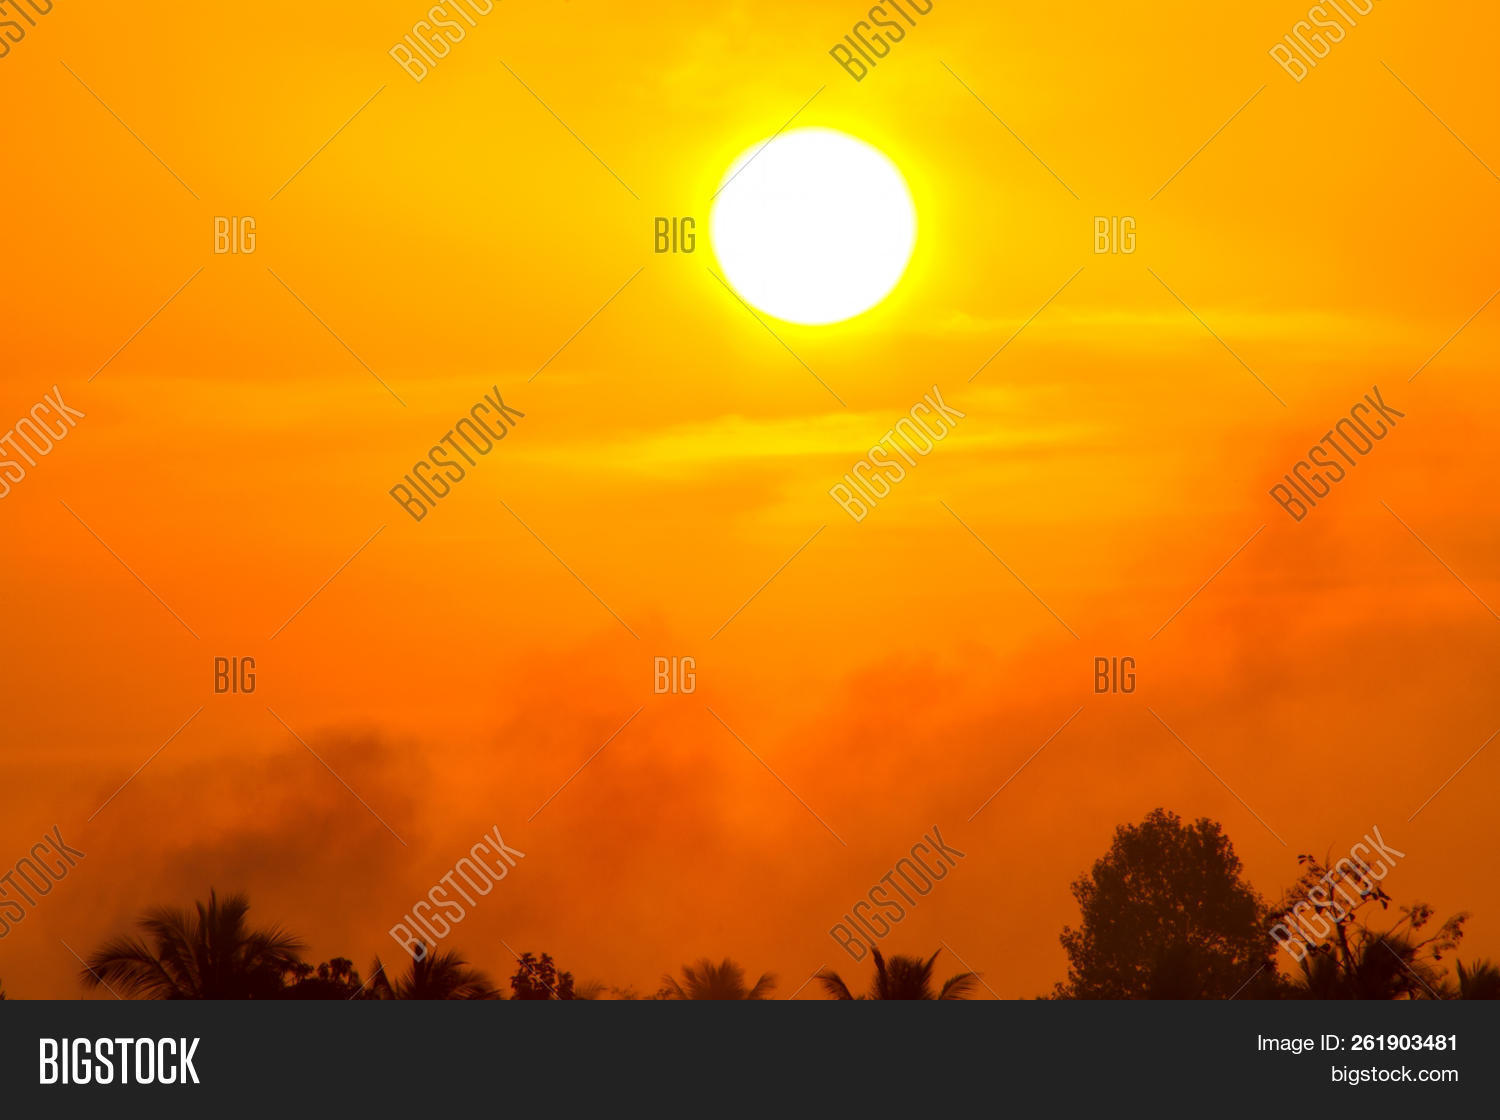 background,bright,burn,burning,carbon,celsius,change,city,climate,concept,damage,day,dioxide,disaster,effect,environment,extreme,global,greenhouse,heat,heatwave,high,hot,light,nature,orange,outdoor,season,skin,sky,stroke,summer,sun,sunlight,sunny,sunrise,temperature,thermometer,warm,warming,water,wave,weather,world